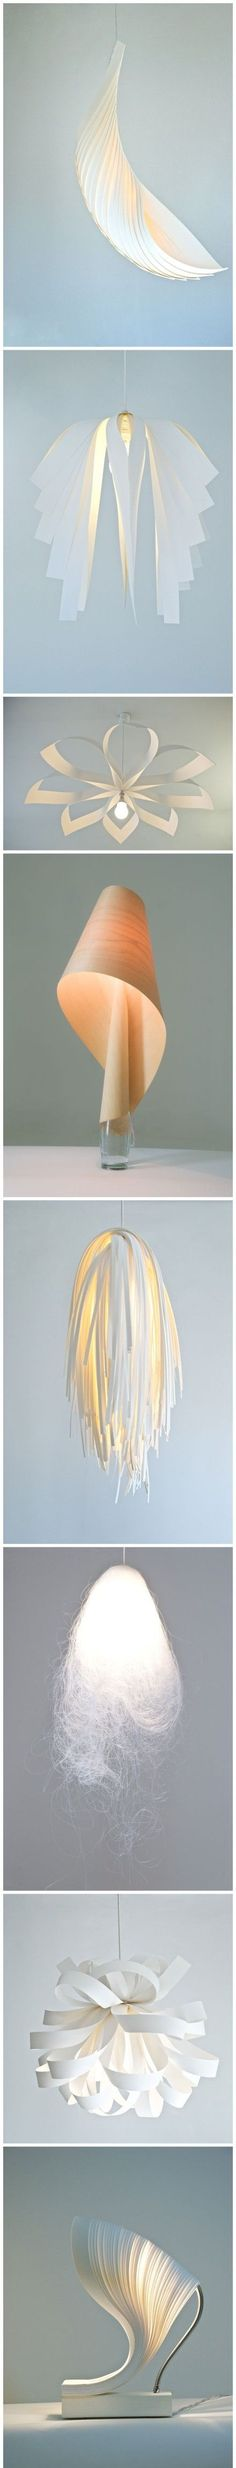 limited edition, paper lamp, designed by 7gods